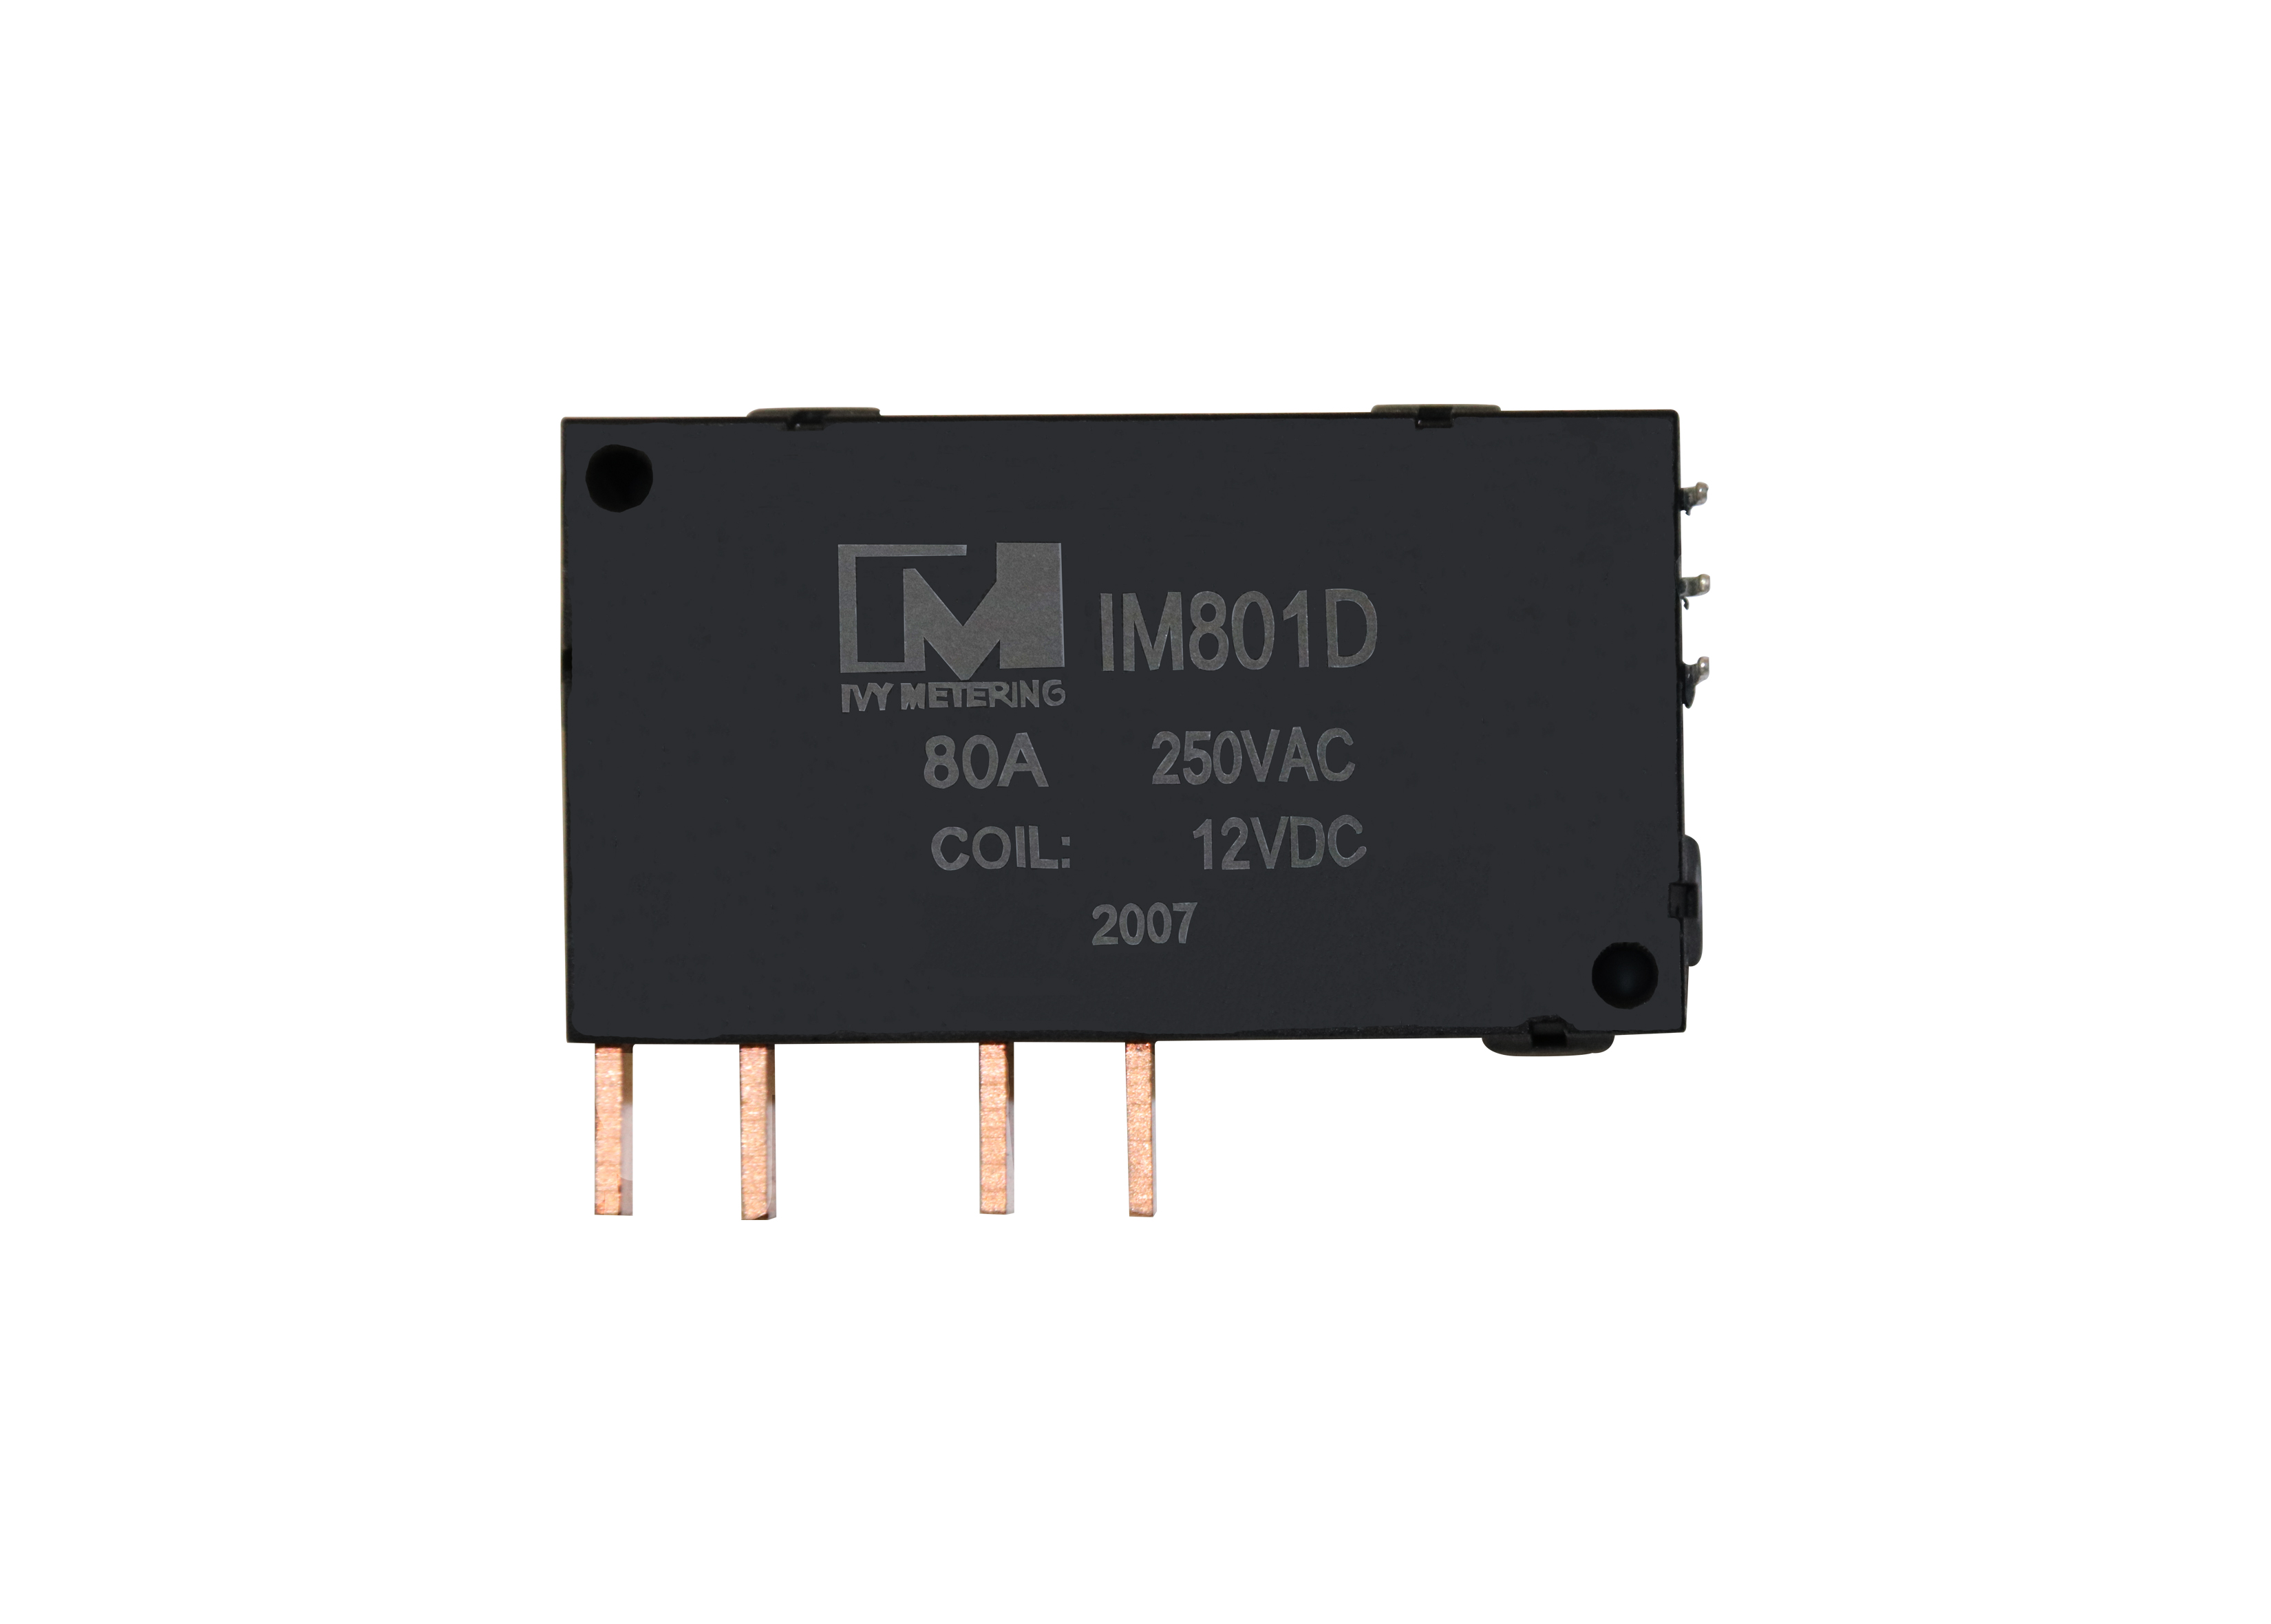 Ordering information of latching relay